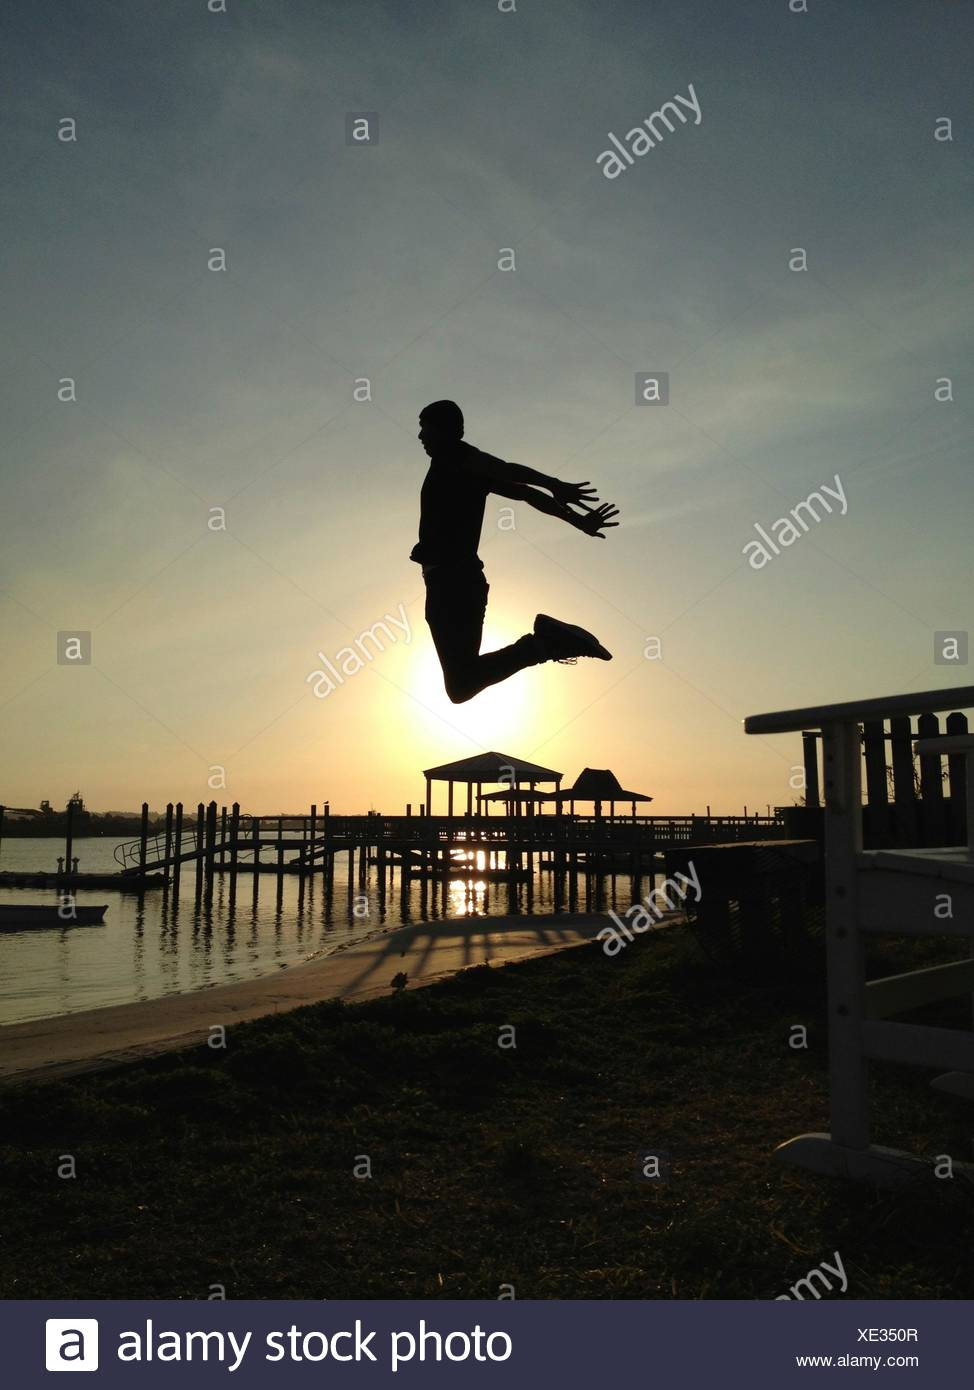 Man jumping high into sunset on beach - Stock Image